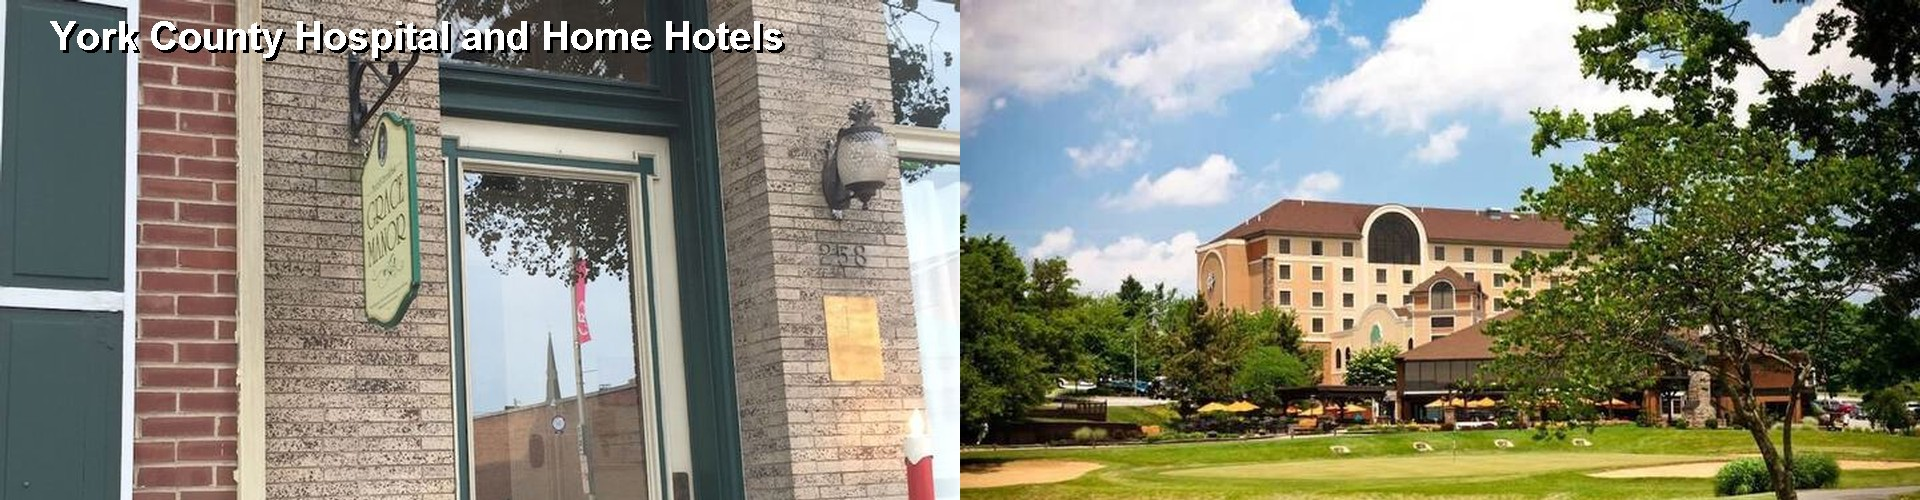 5 Best Hotels near York County Hospital and Home